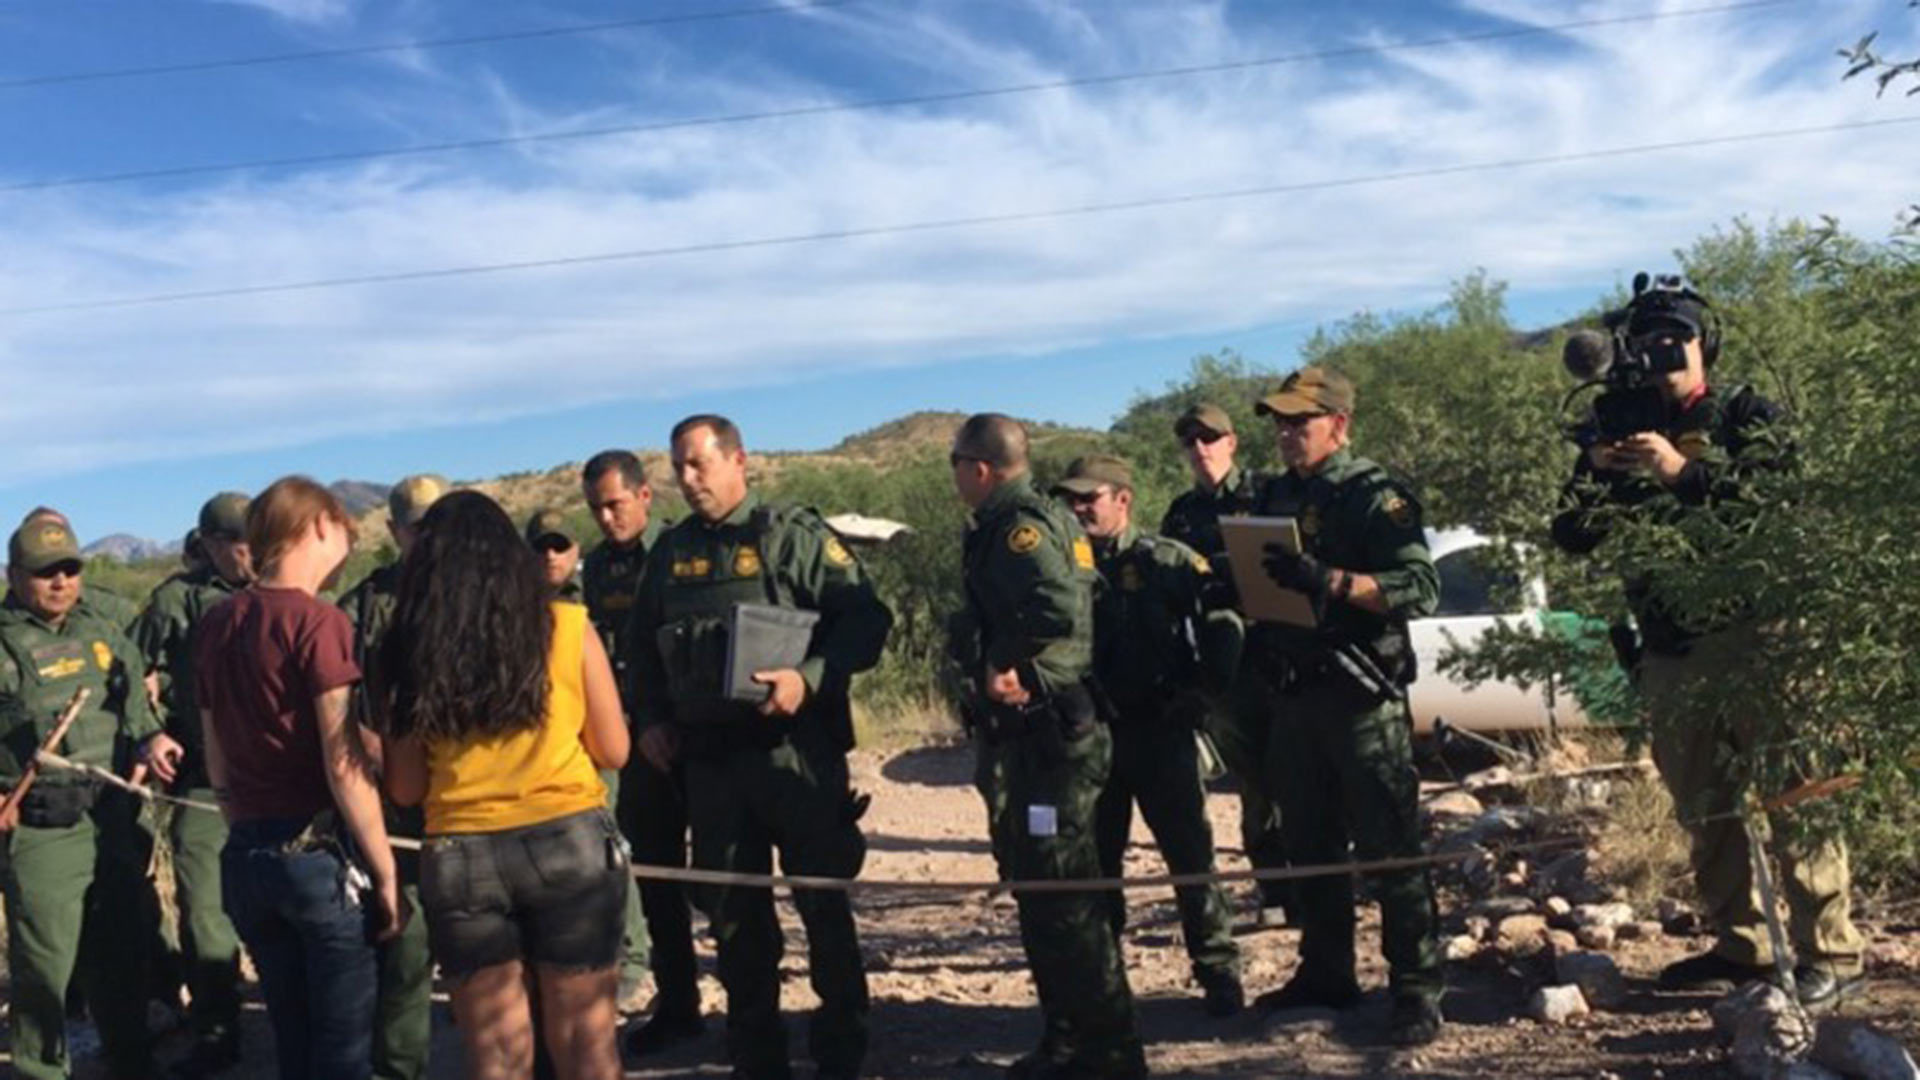 More than 30 Border Patrol agents entered a camp of the No More Deaths migrant aid group on Tuesday, June 13, 2017.